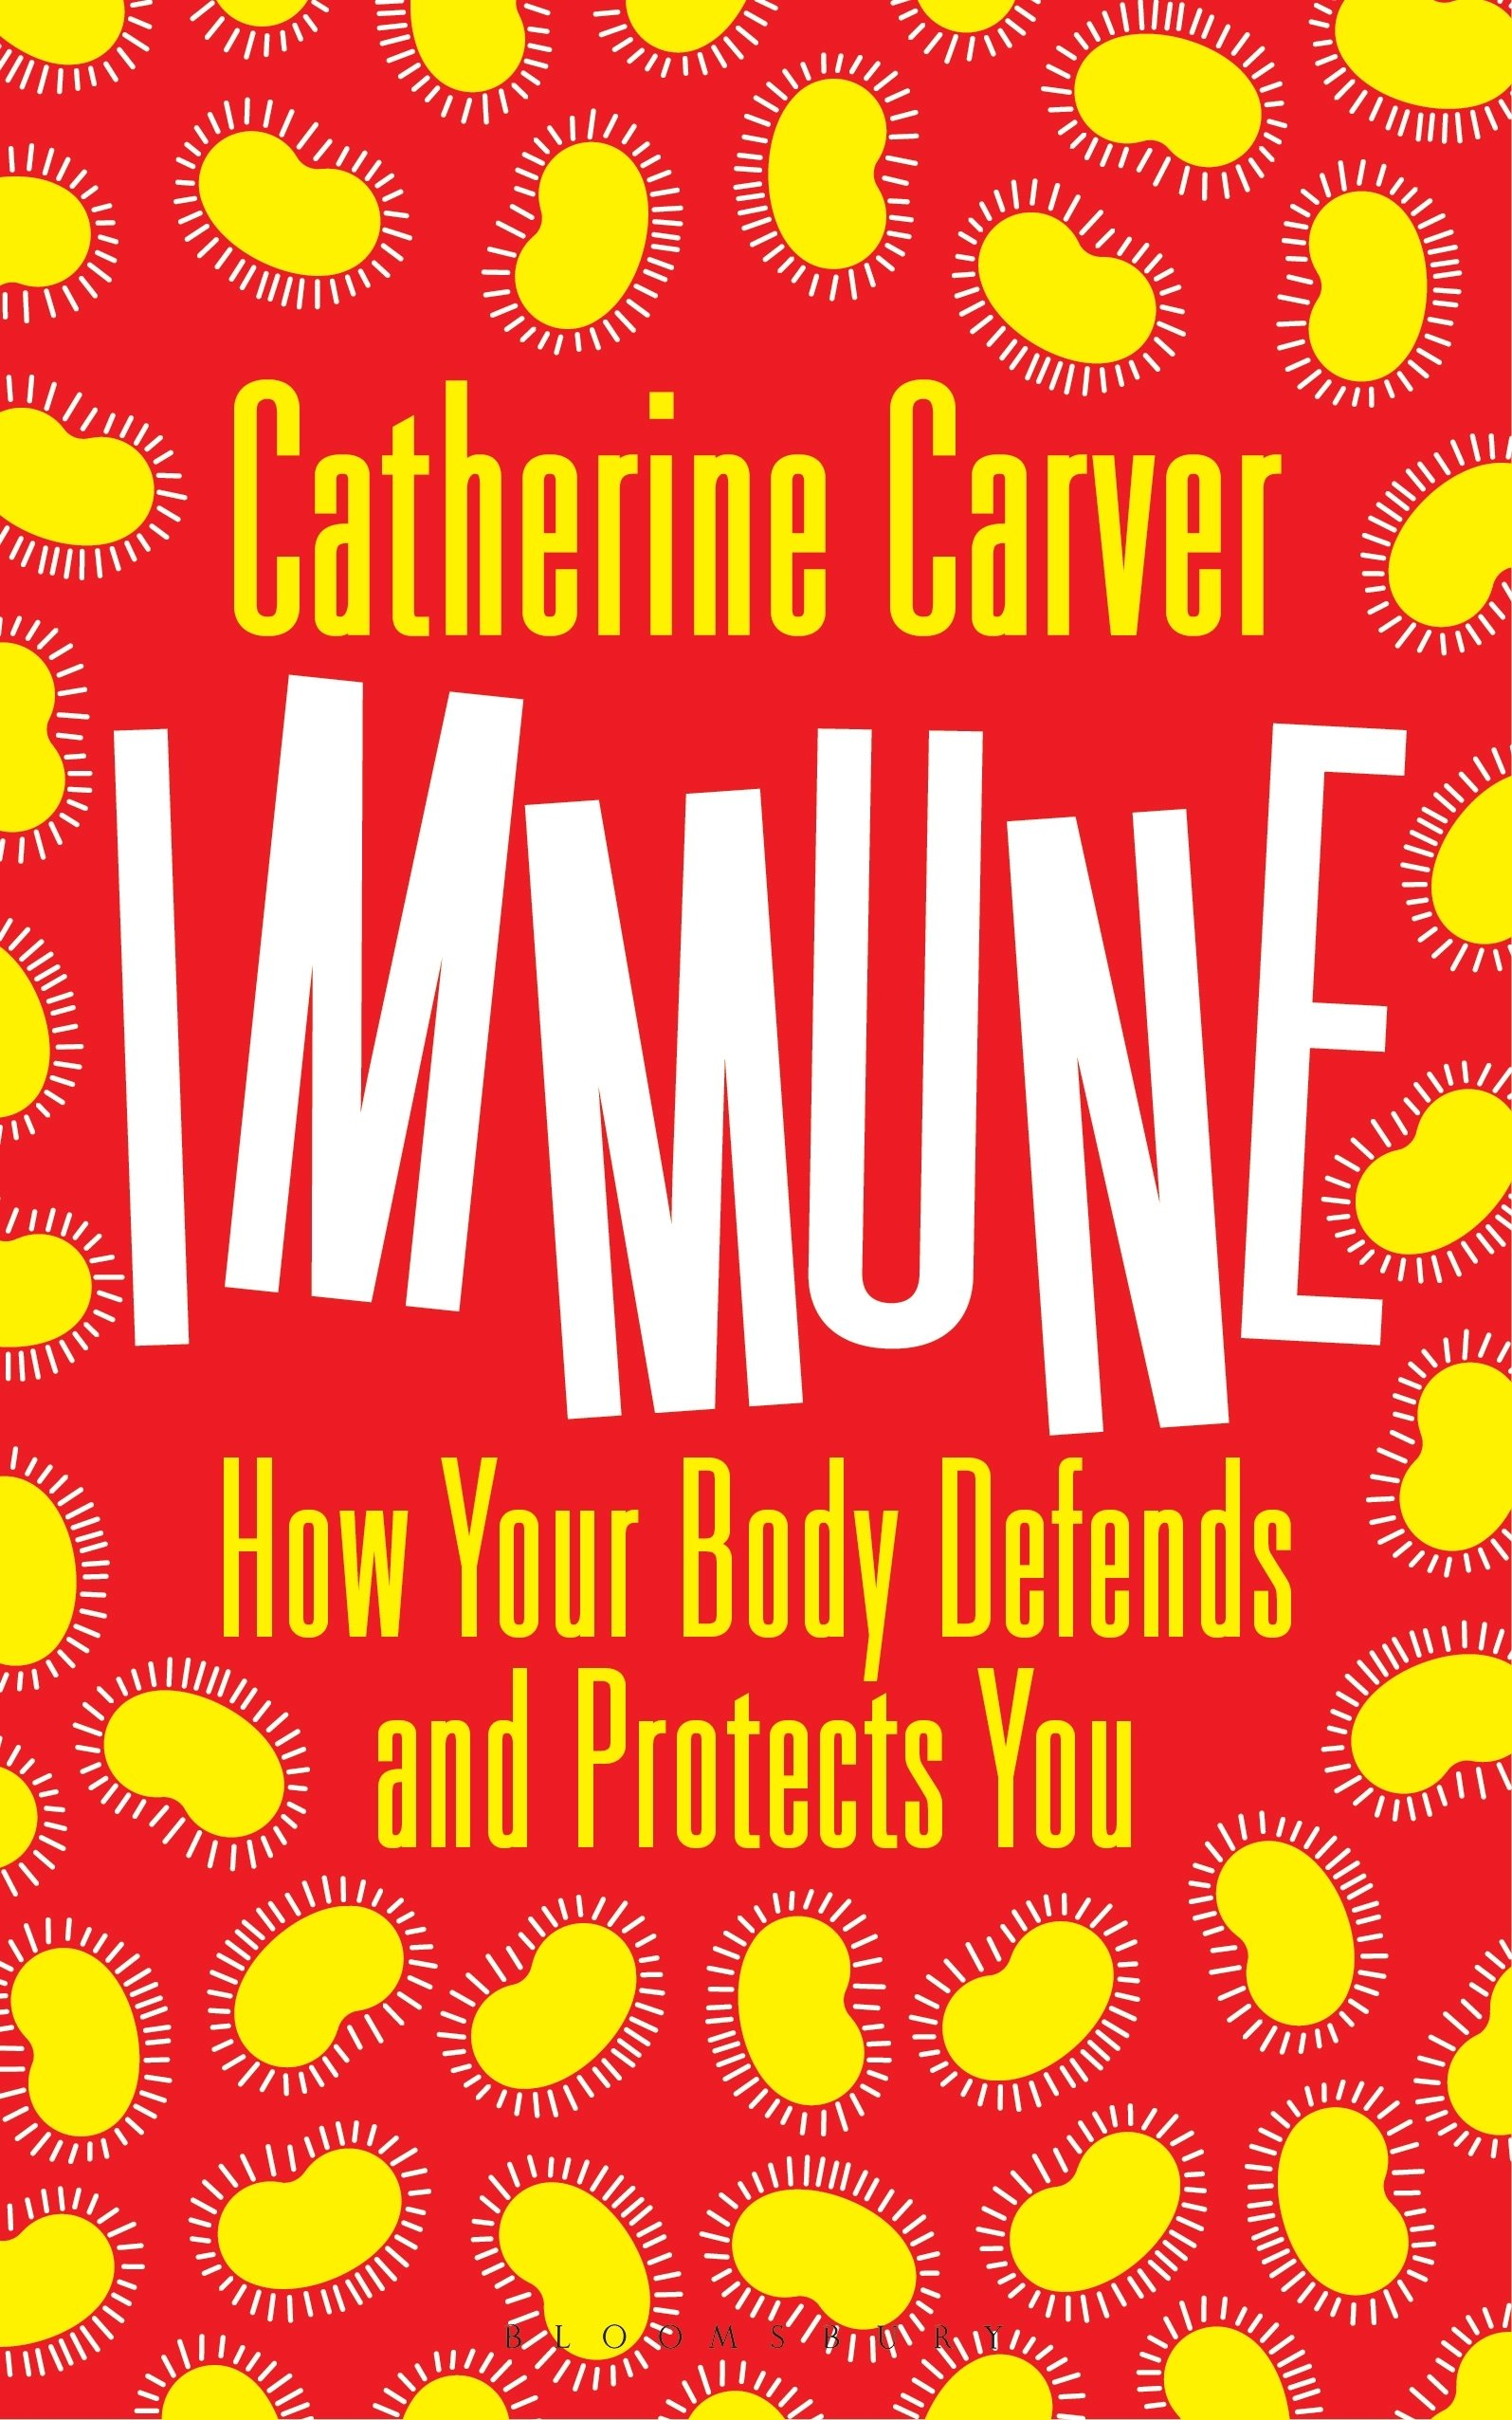 Immune: How Your Body Defends and Protects You book cover